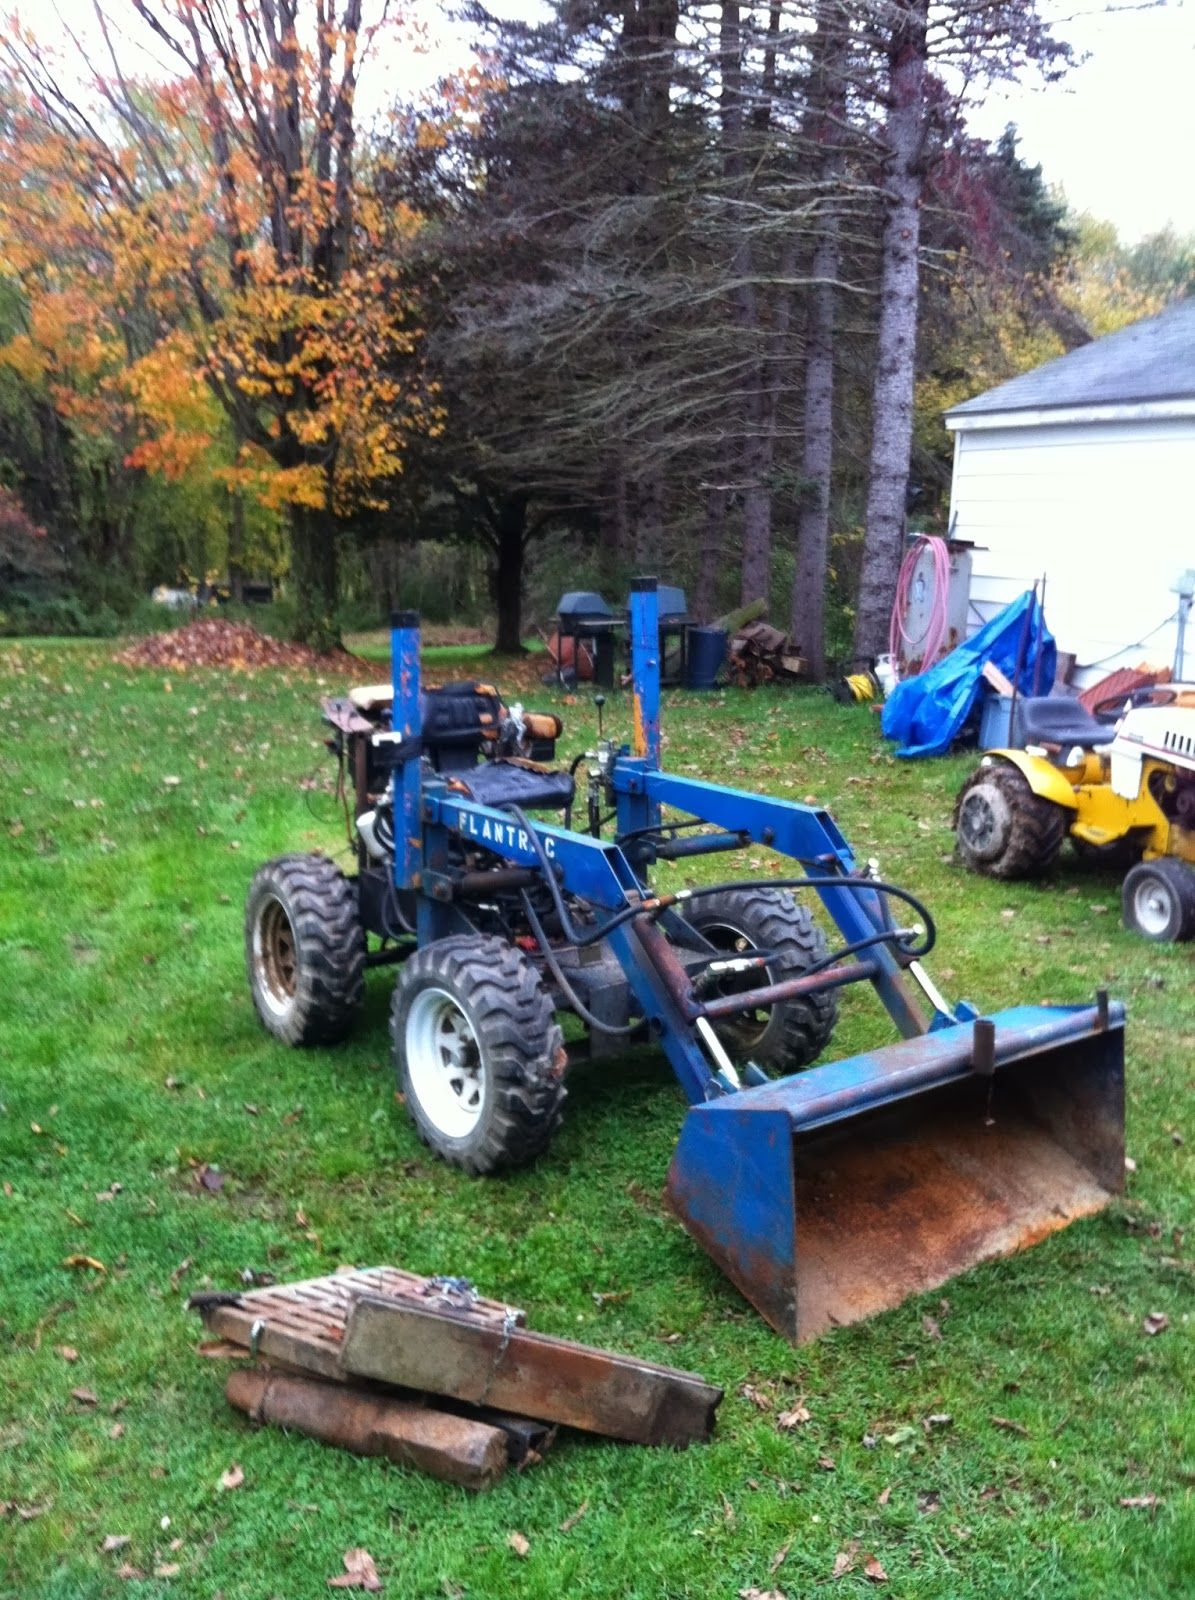 Homemade loader lawn tractor lawn mower front end loader